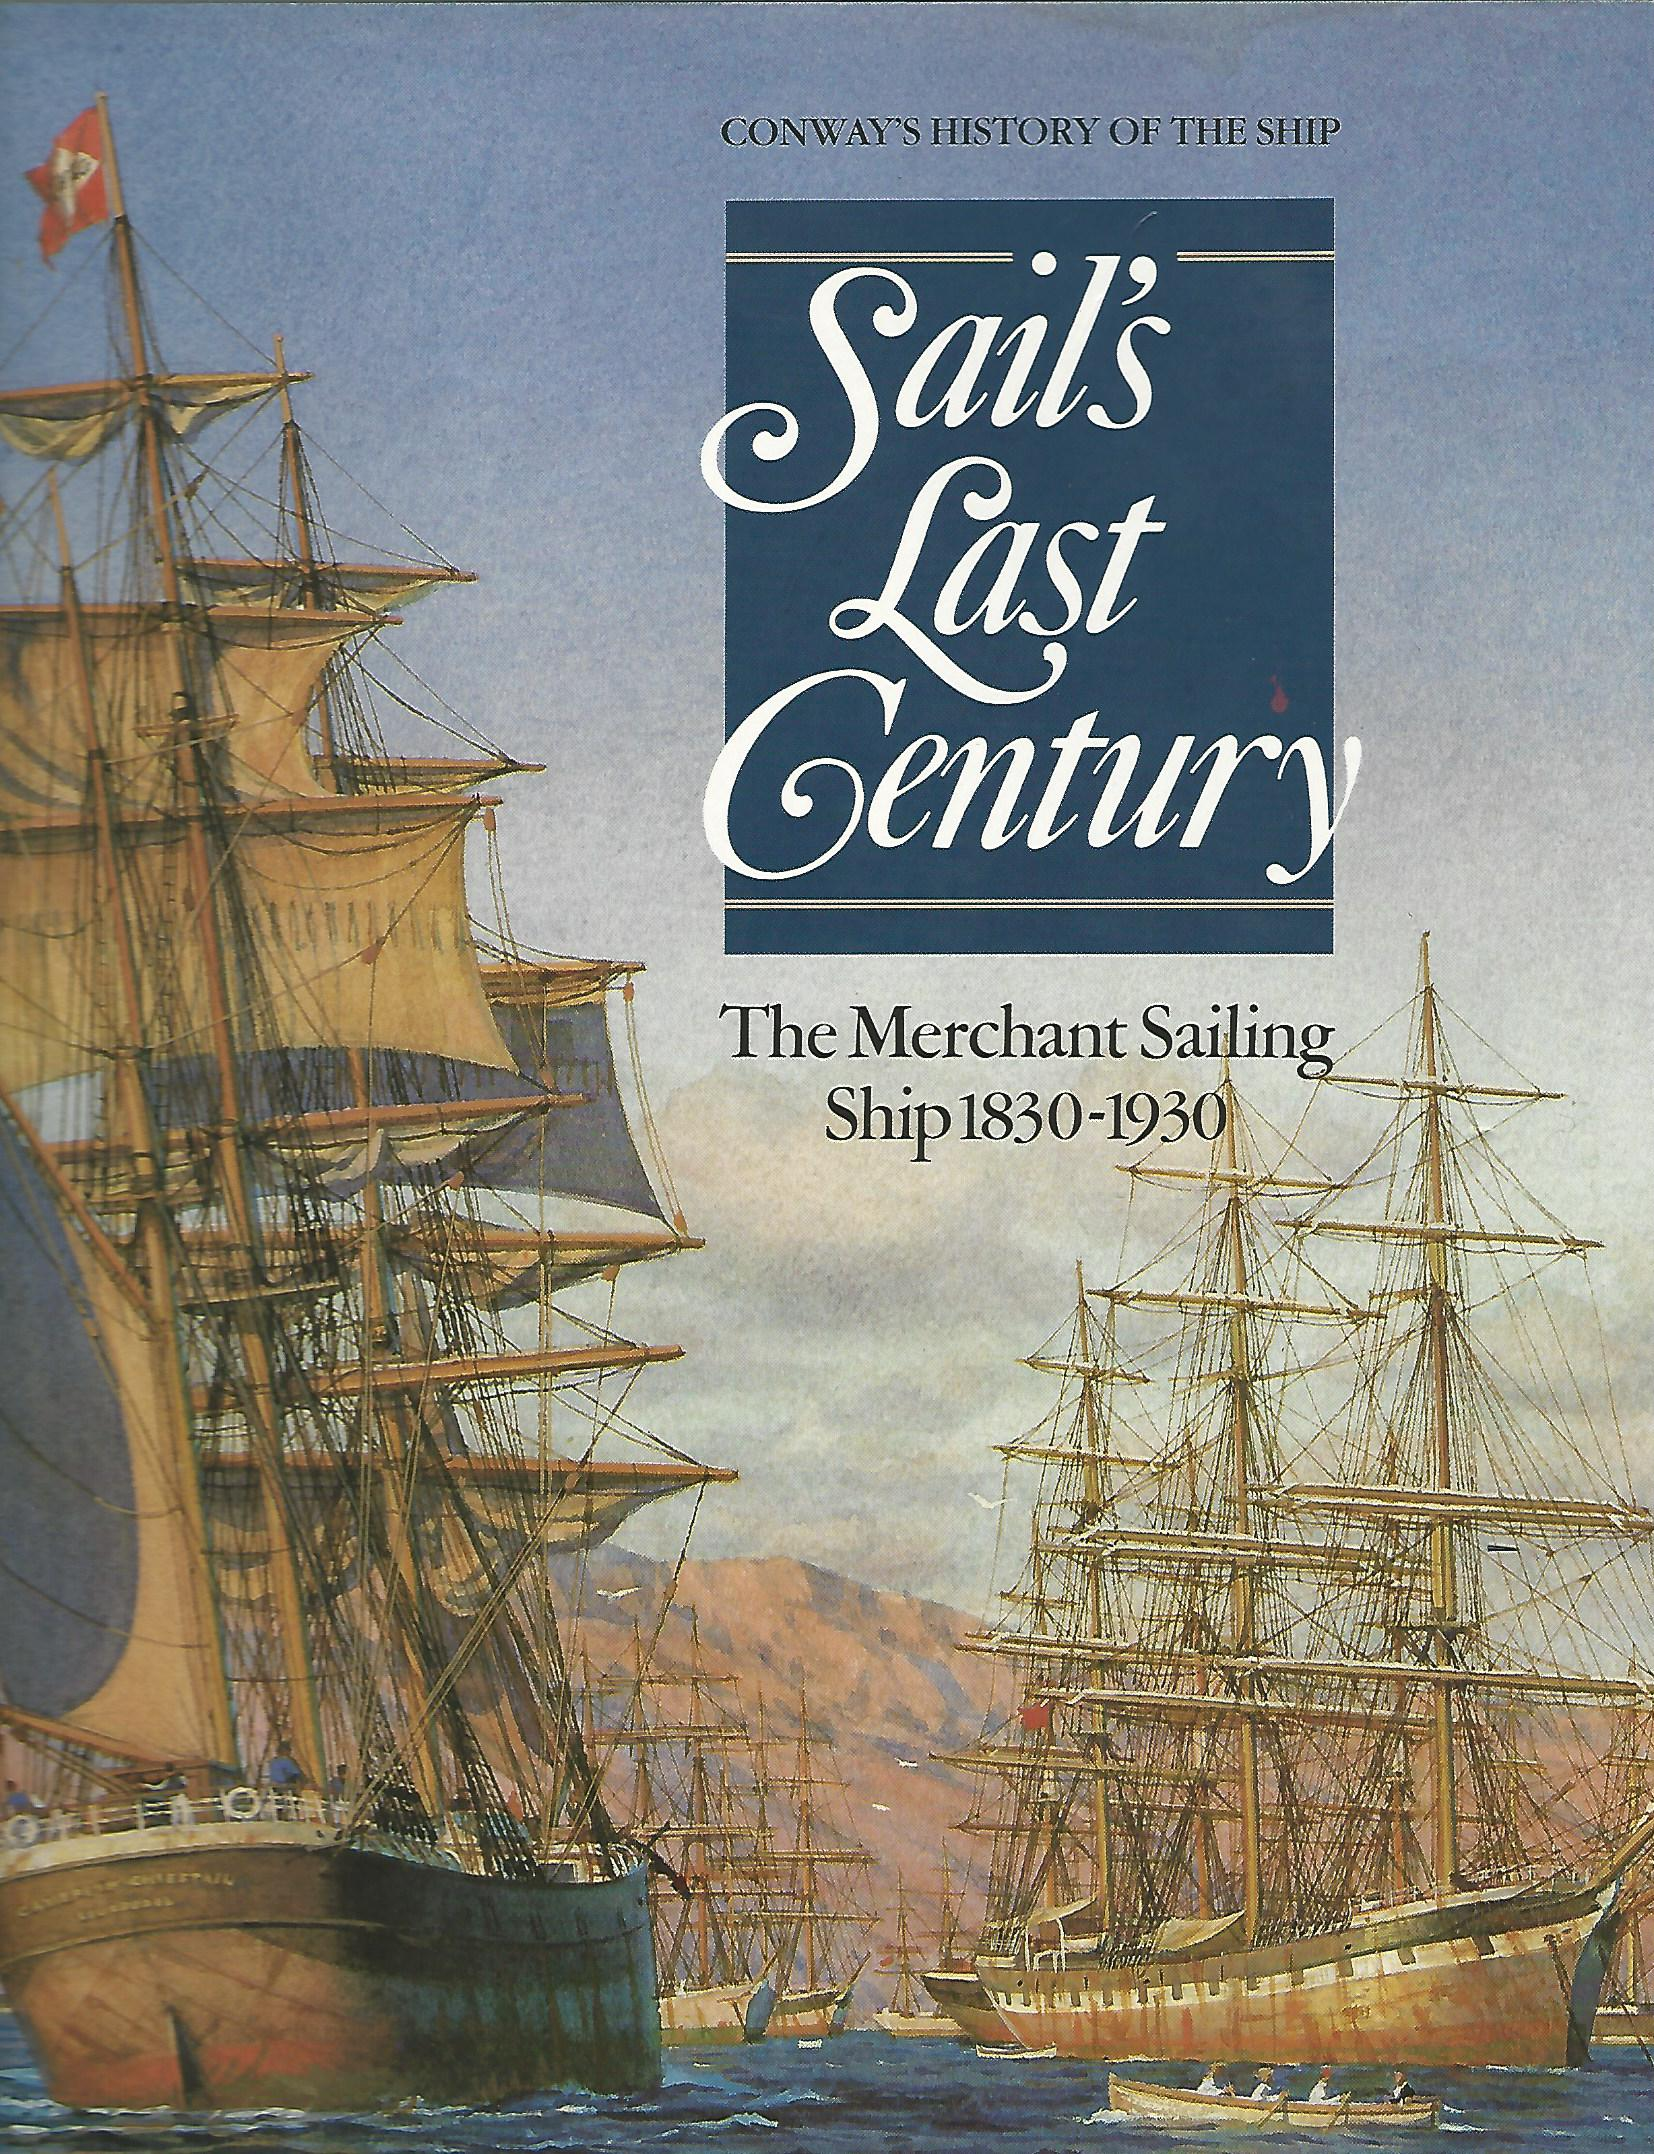 Image for Sail's Last Century: Merchant Sailing Ship, 1830-1930 (Conway's History of the Ship)